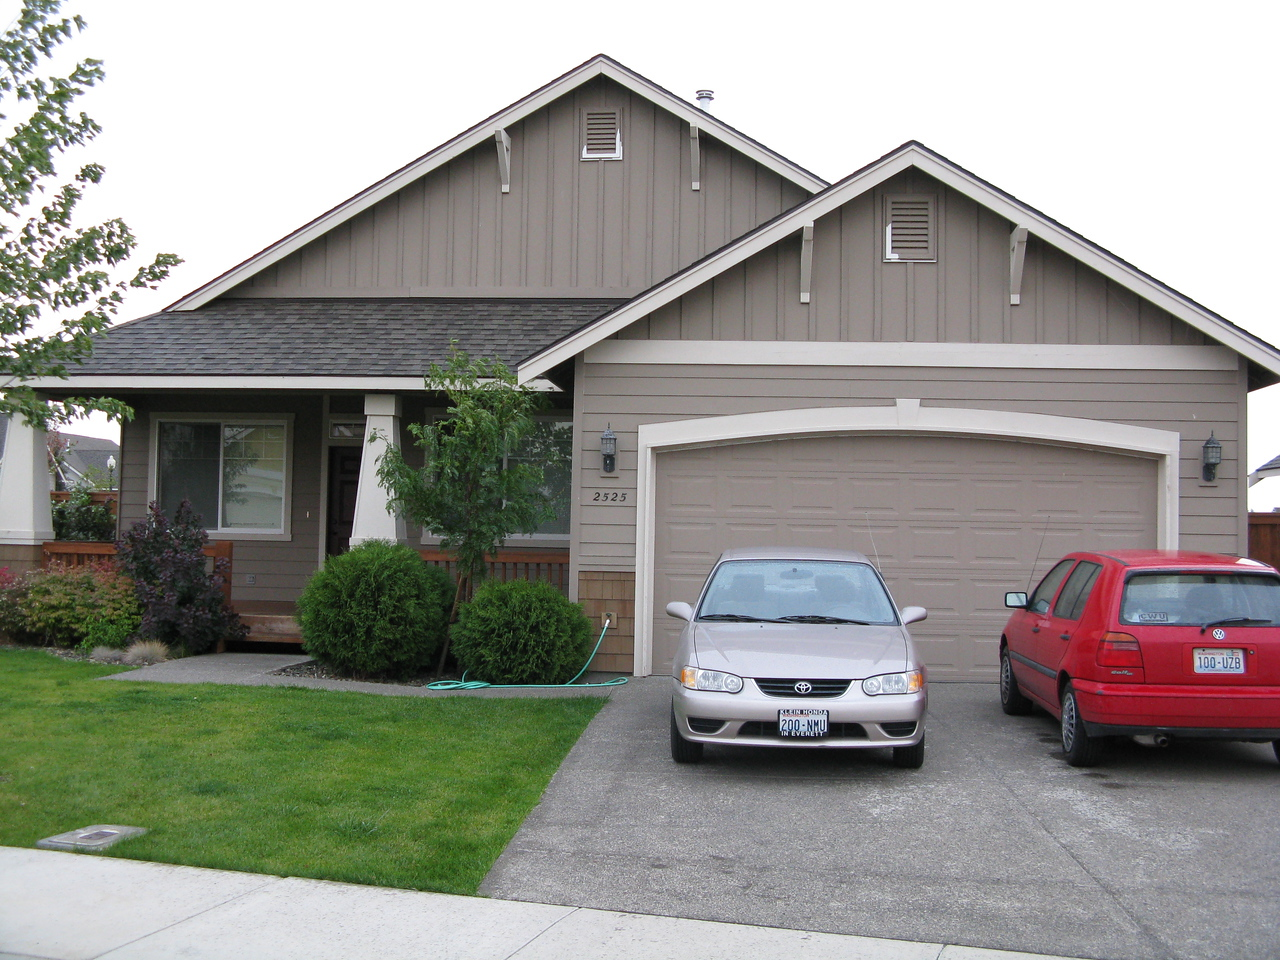 On September 20, Mary and Martin went to Ellensburg with Kevin to help him move into his new room.  The tan car on the left is Kevin's new (to him but used) Corolla.